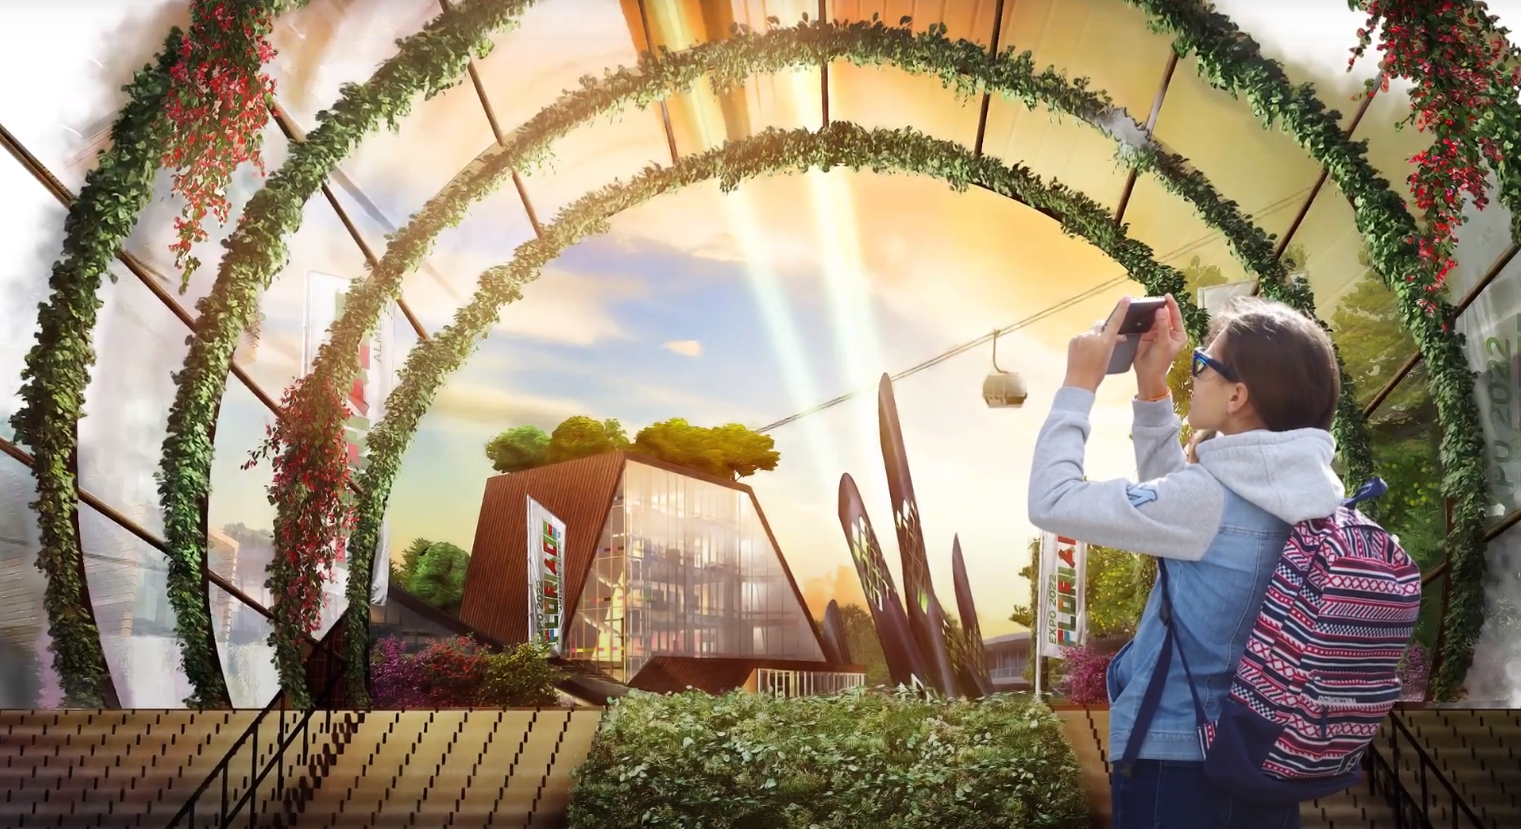 International Horticultural Exhibition 2019 Beijing, China